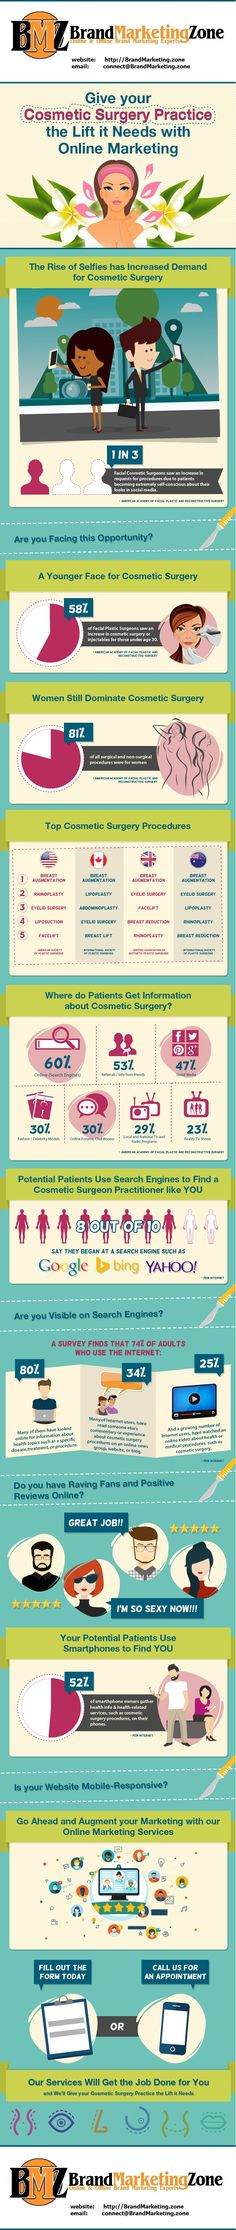 Online Marketing for Cosmetic Surgeons - Brand Marketing Zone Ltd. With the growing demand for cosmetic surgery procedures, cosmetic surgeons now face the challenge of being visible to potential patients whenever they type in cosmetic surgery-related queries on the Internet.